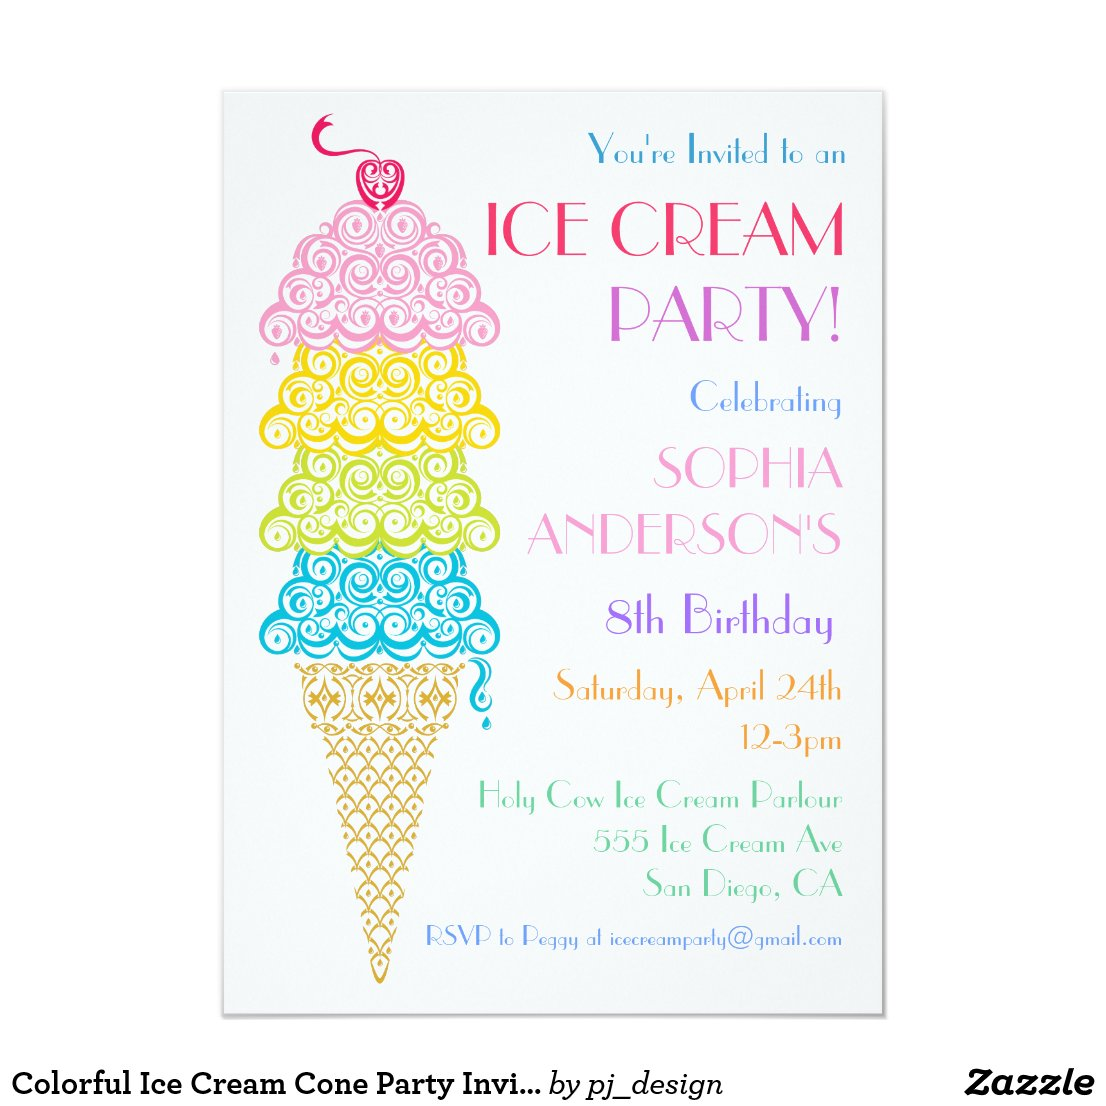 Colorful Ice Cream Cone Party Invitation